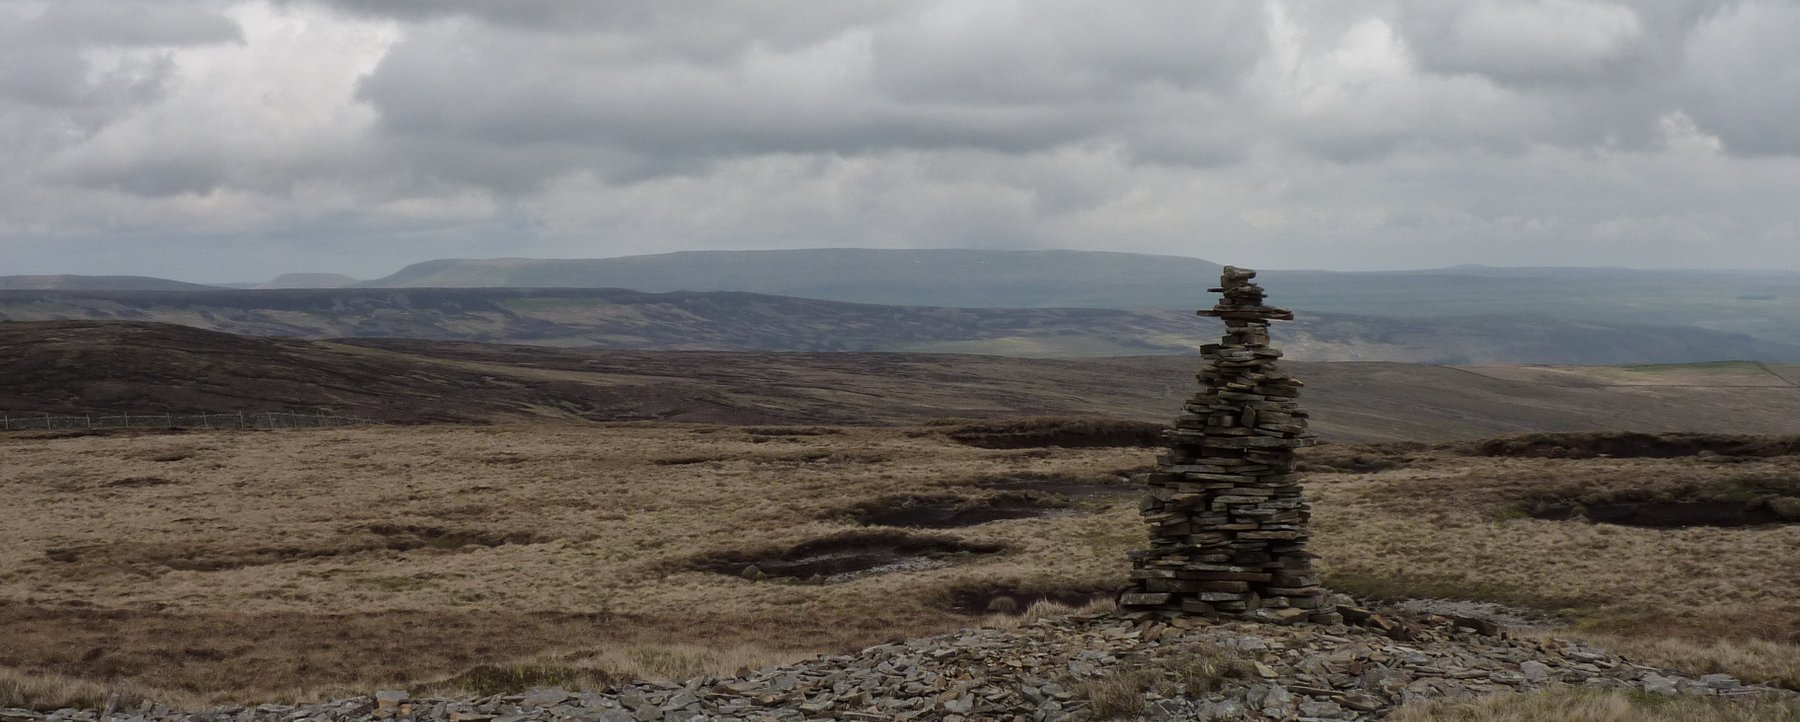 Cairn on the highpoint of the path over Fountains Fell